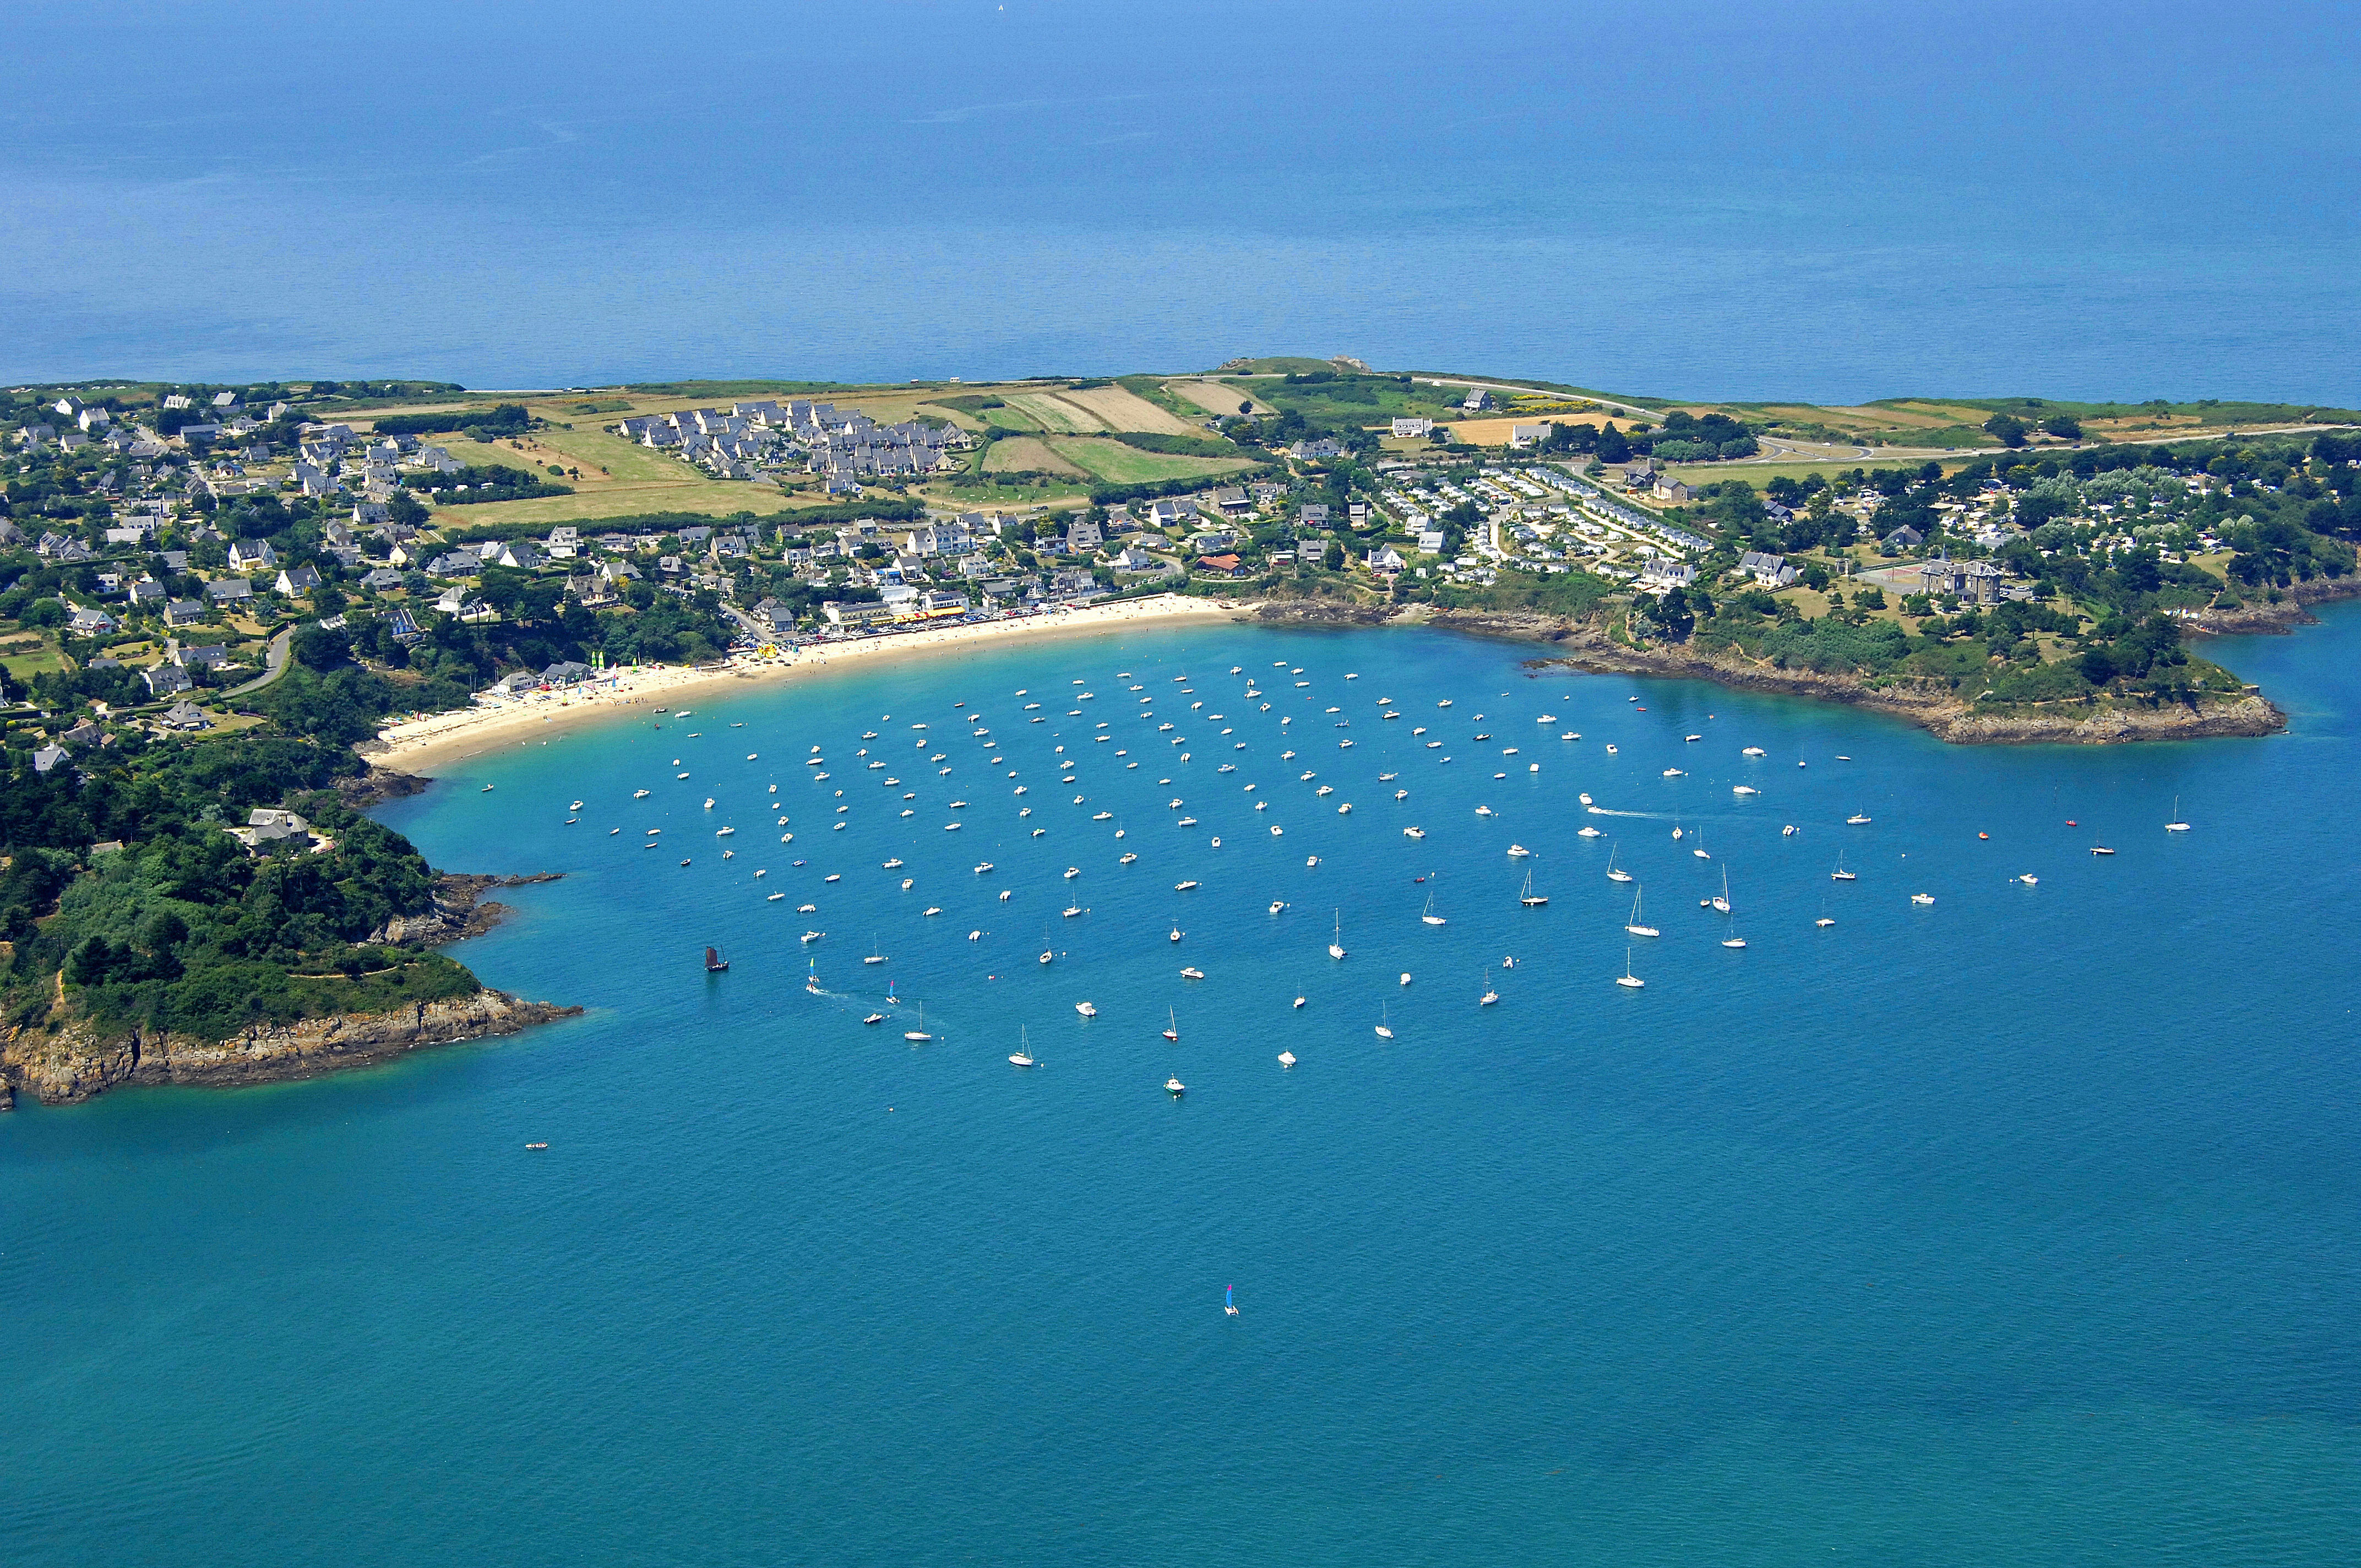 Cancale Marina in Cancale, France - Marina Reviews - Phone Number